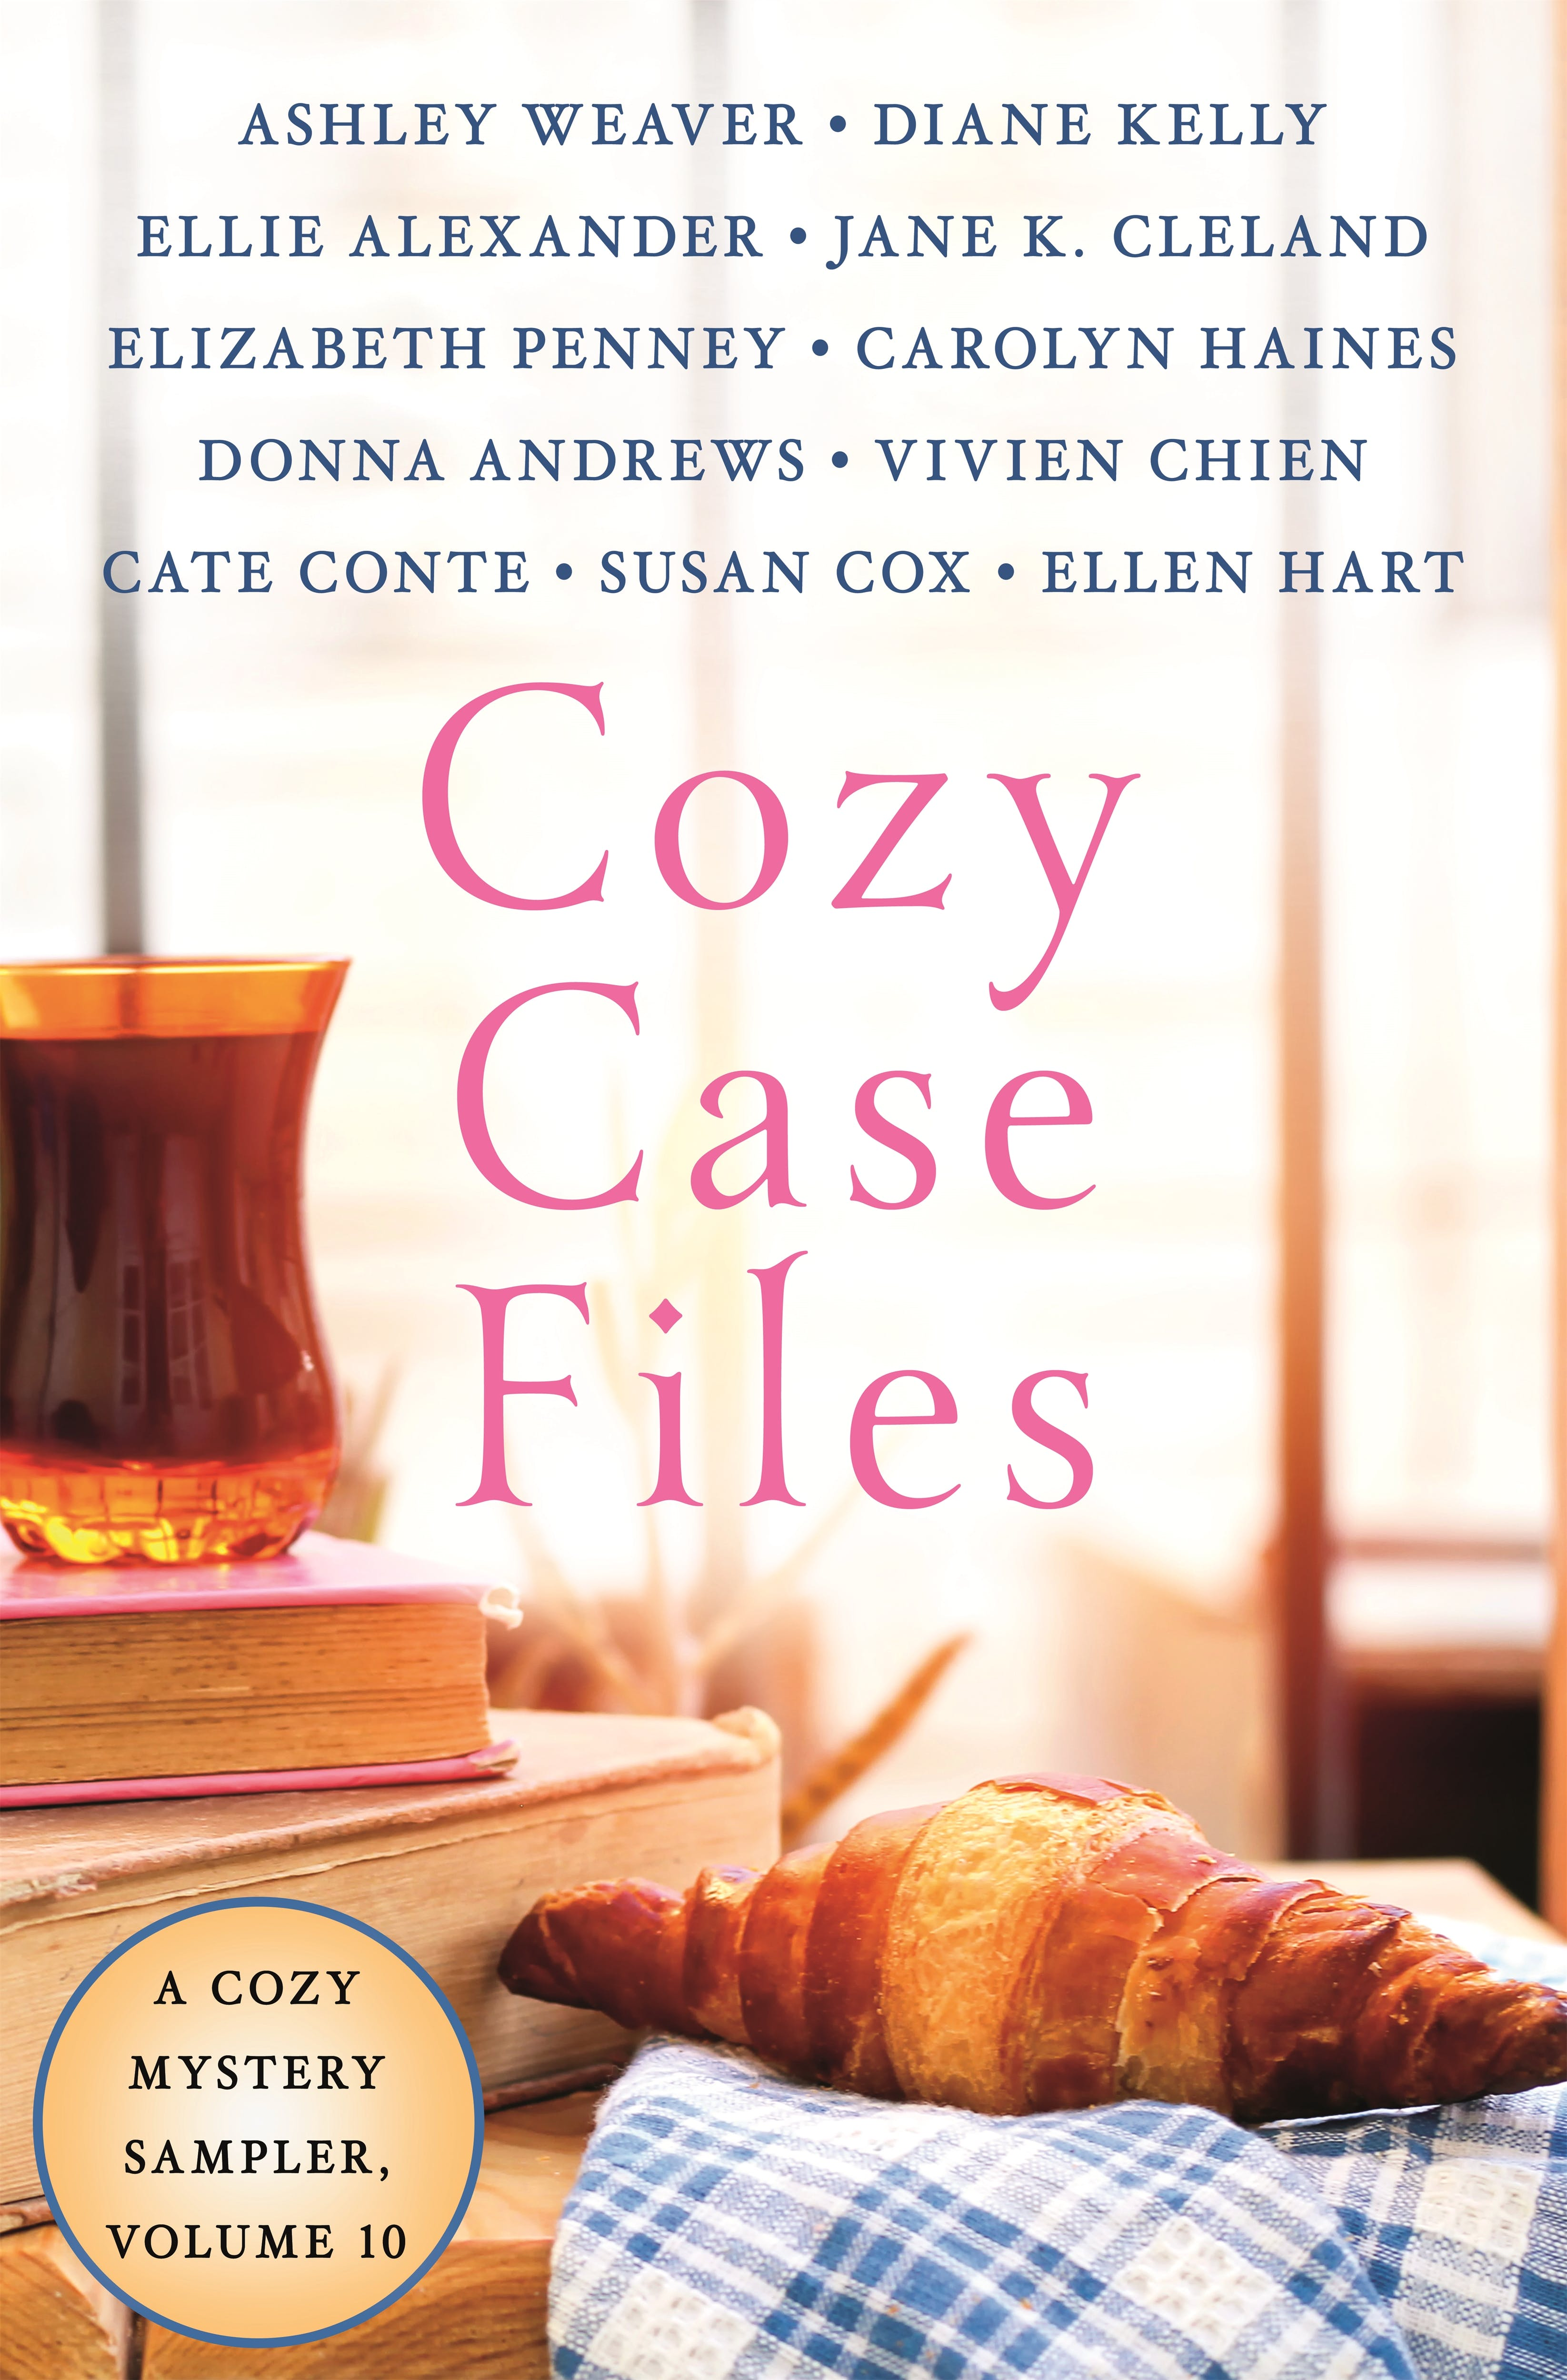 Image of Cozy Case Files, A Cozy Mystery Sampler, Volume 10